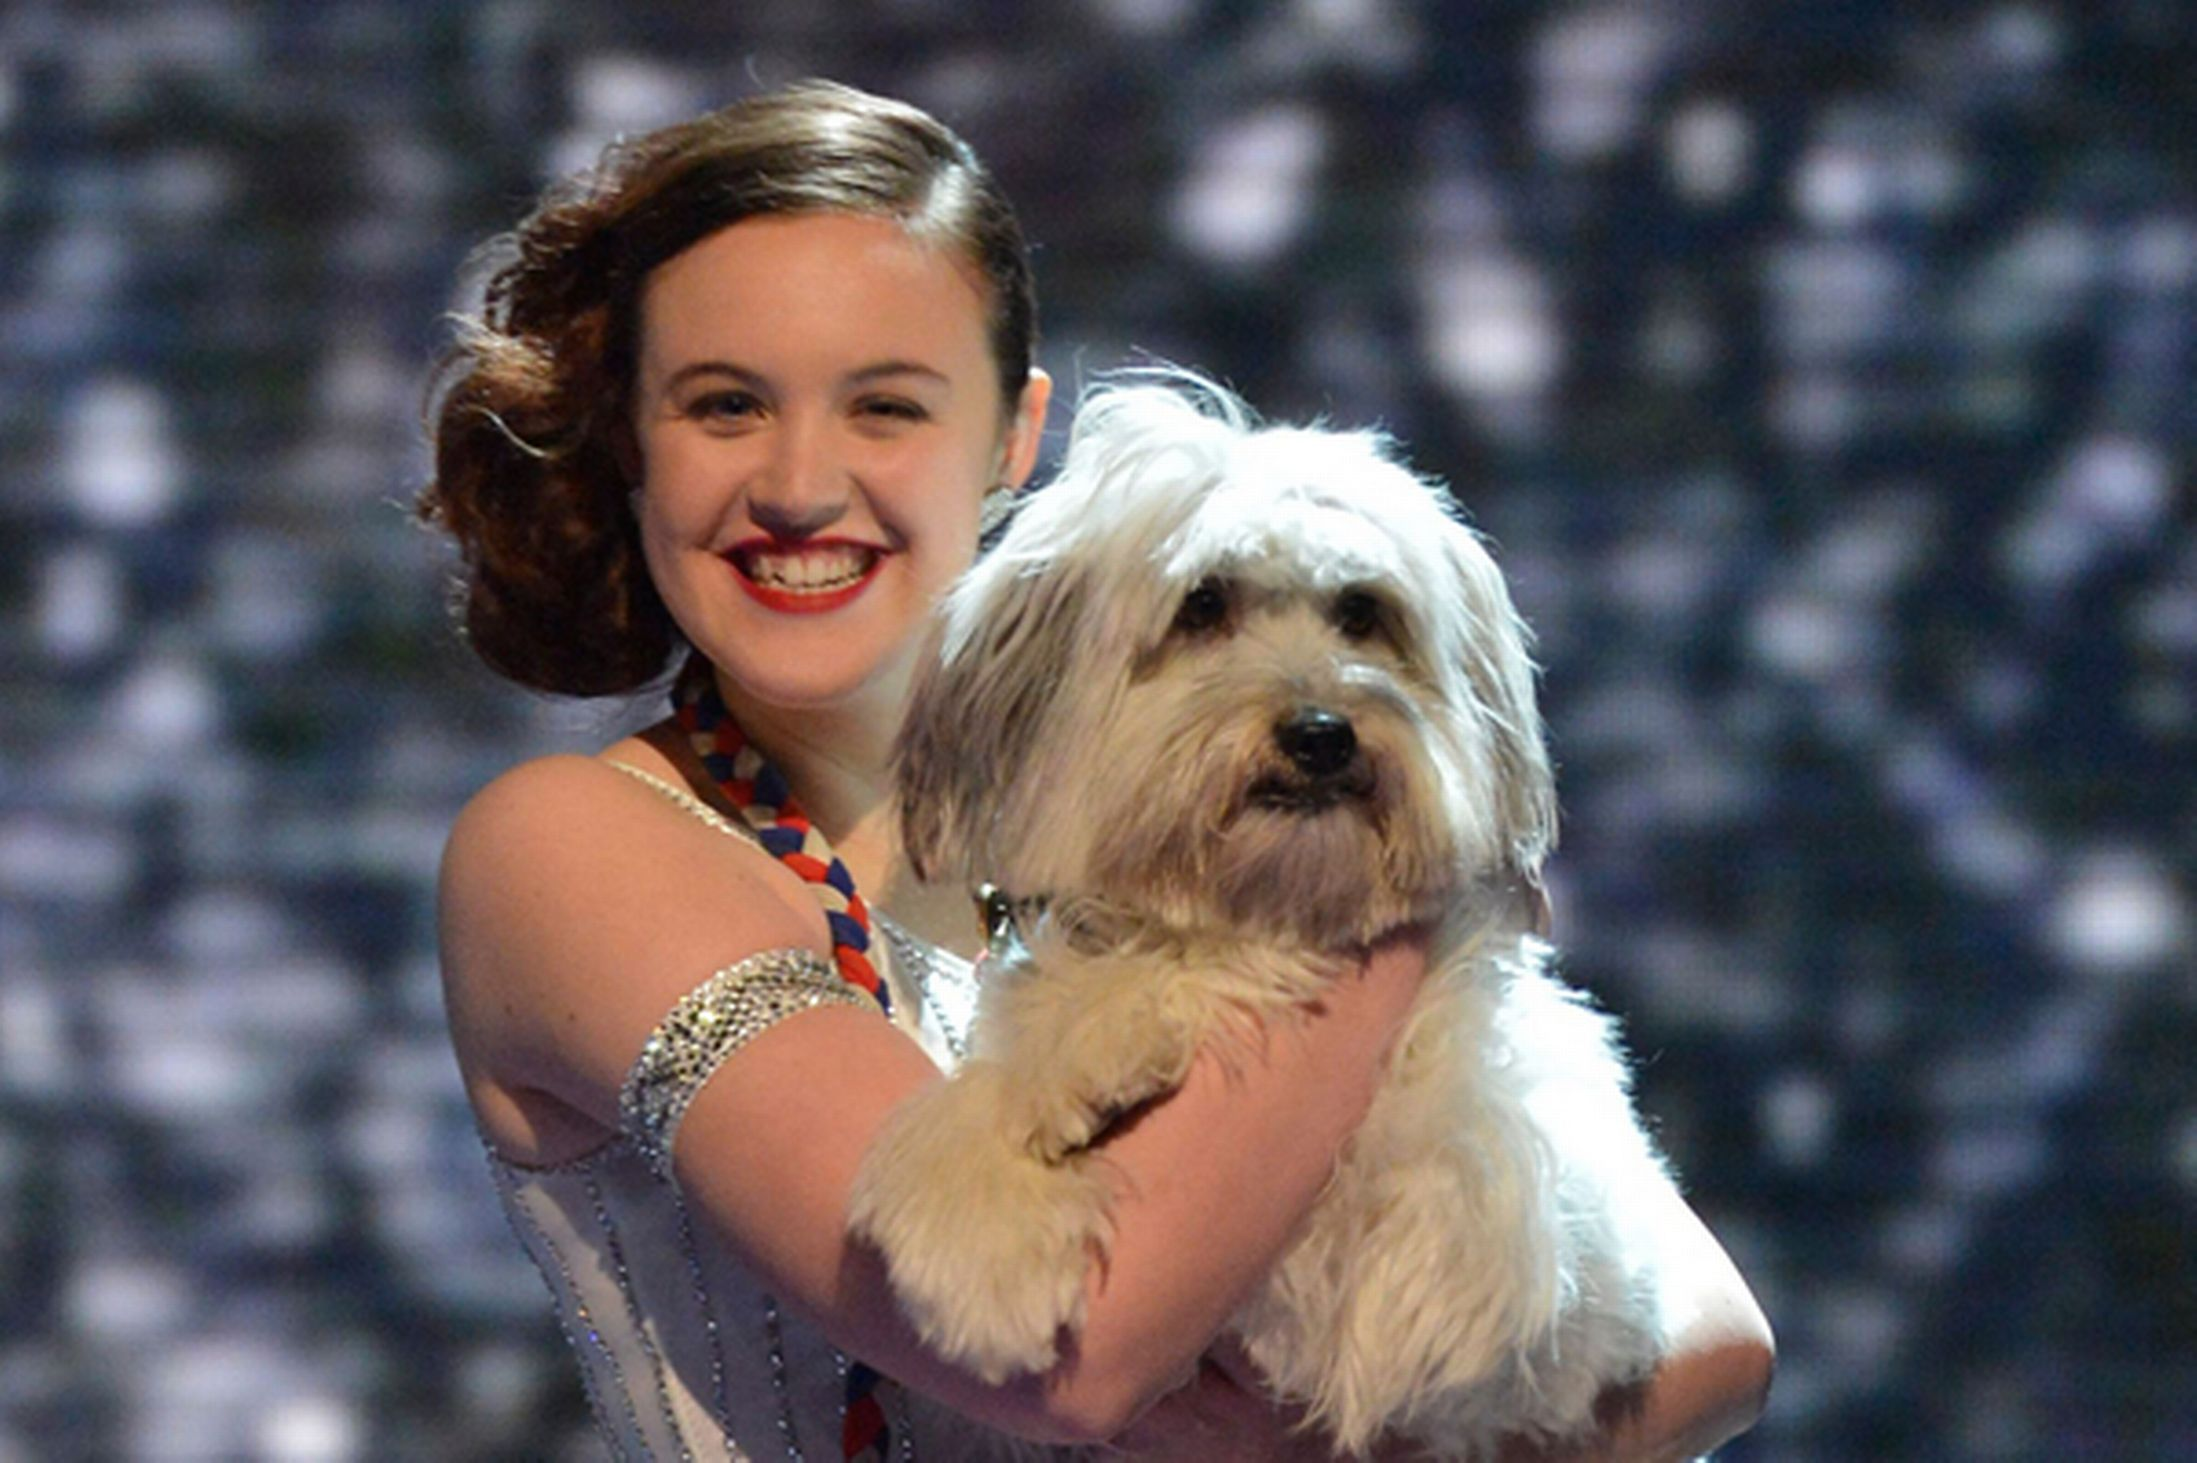 Britain's Got Talent star dog Pudsey dies